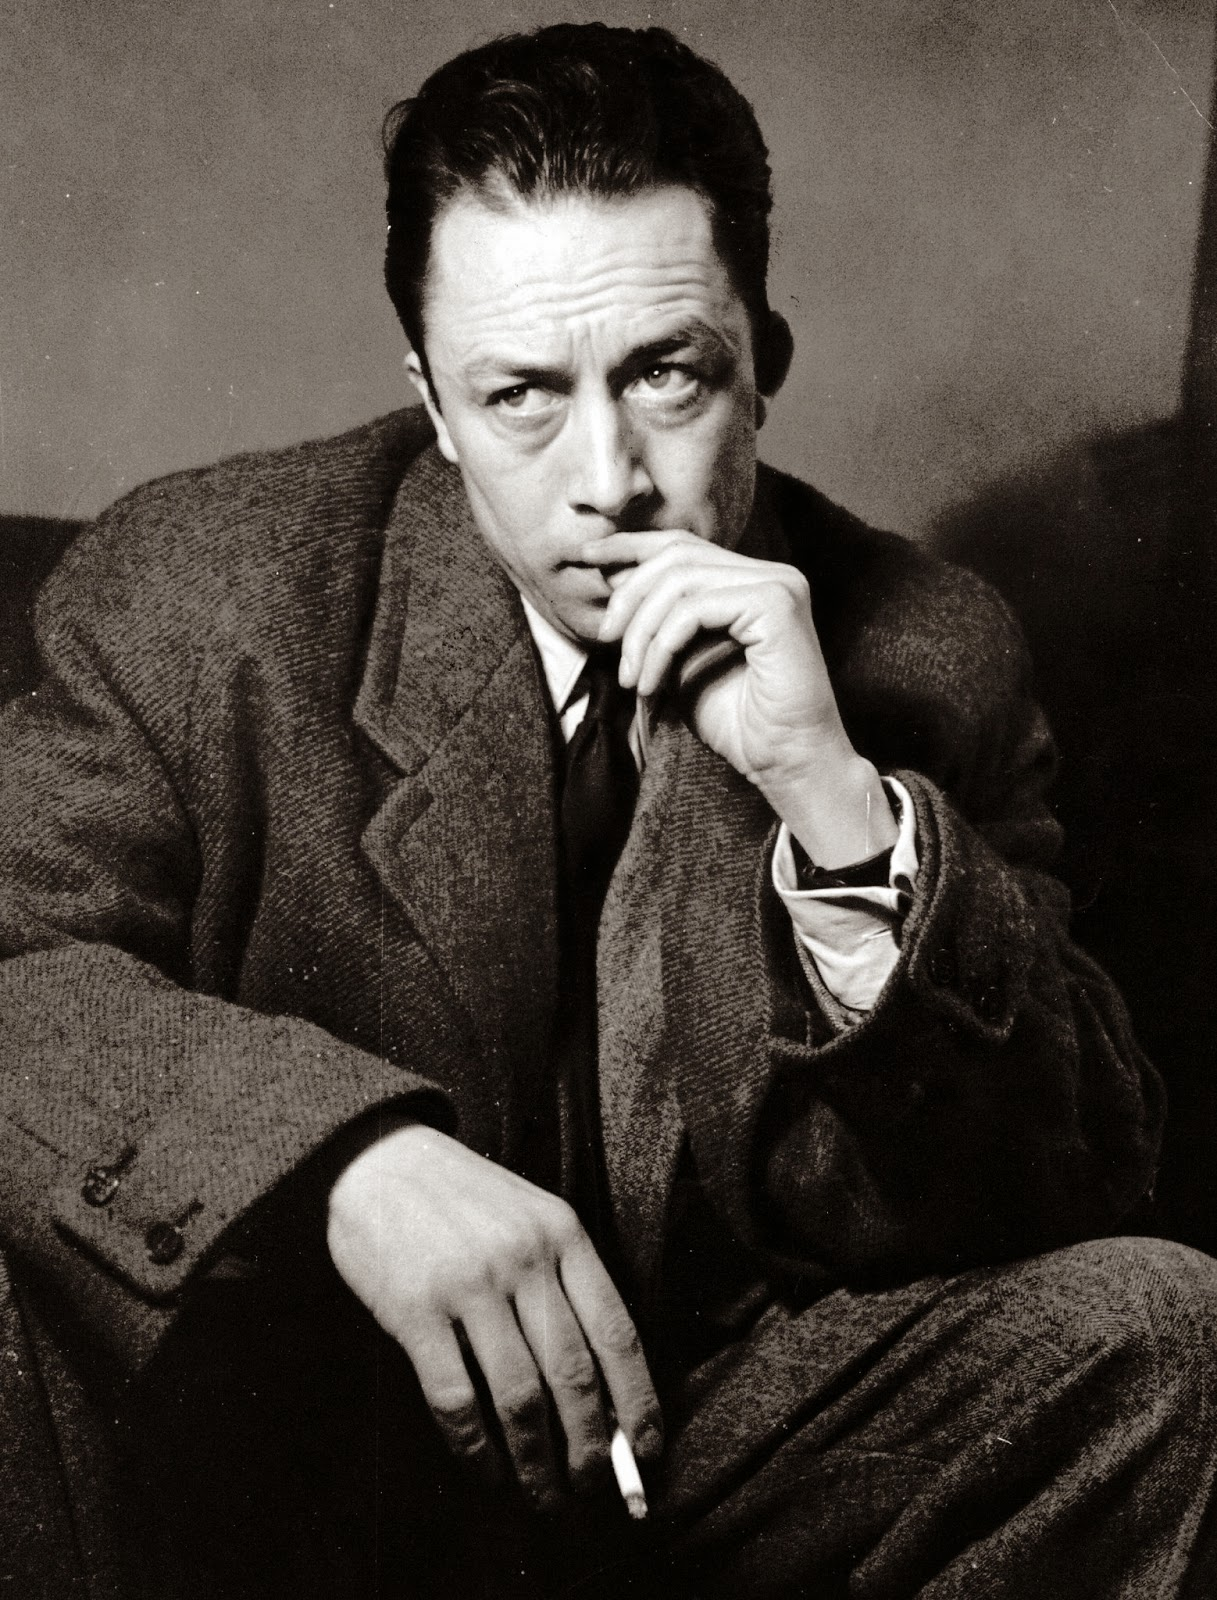 albert camus essay biographies ii albert camus camus the moral  biographies ii albert camus albert camus